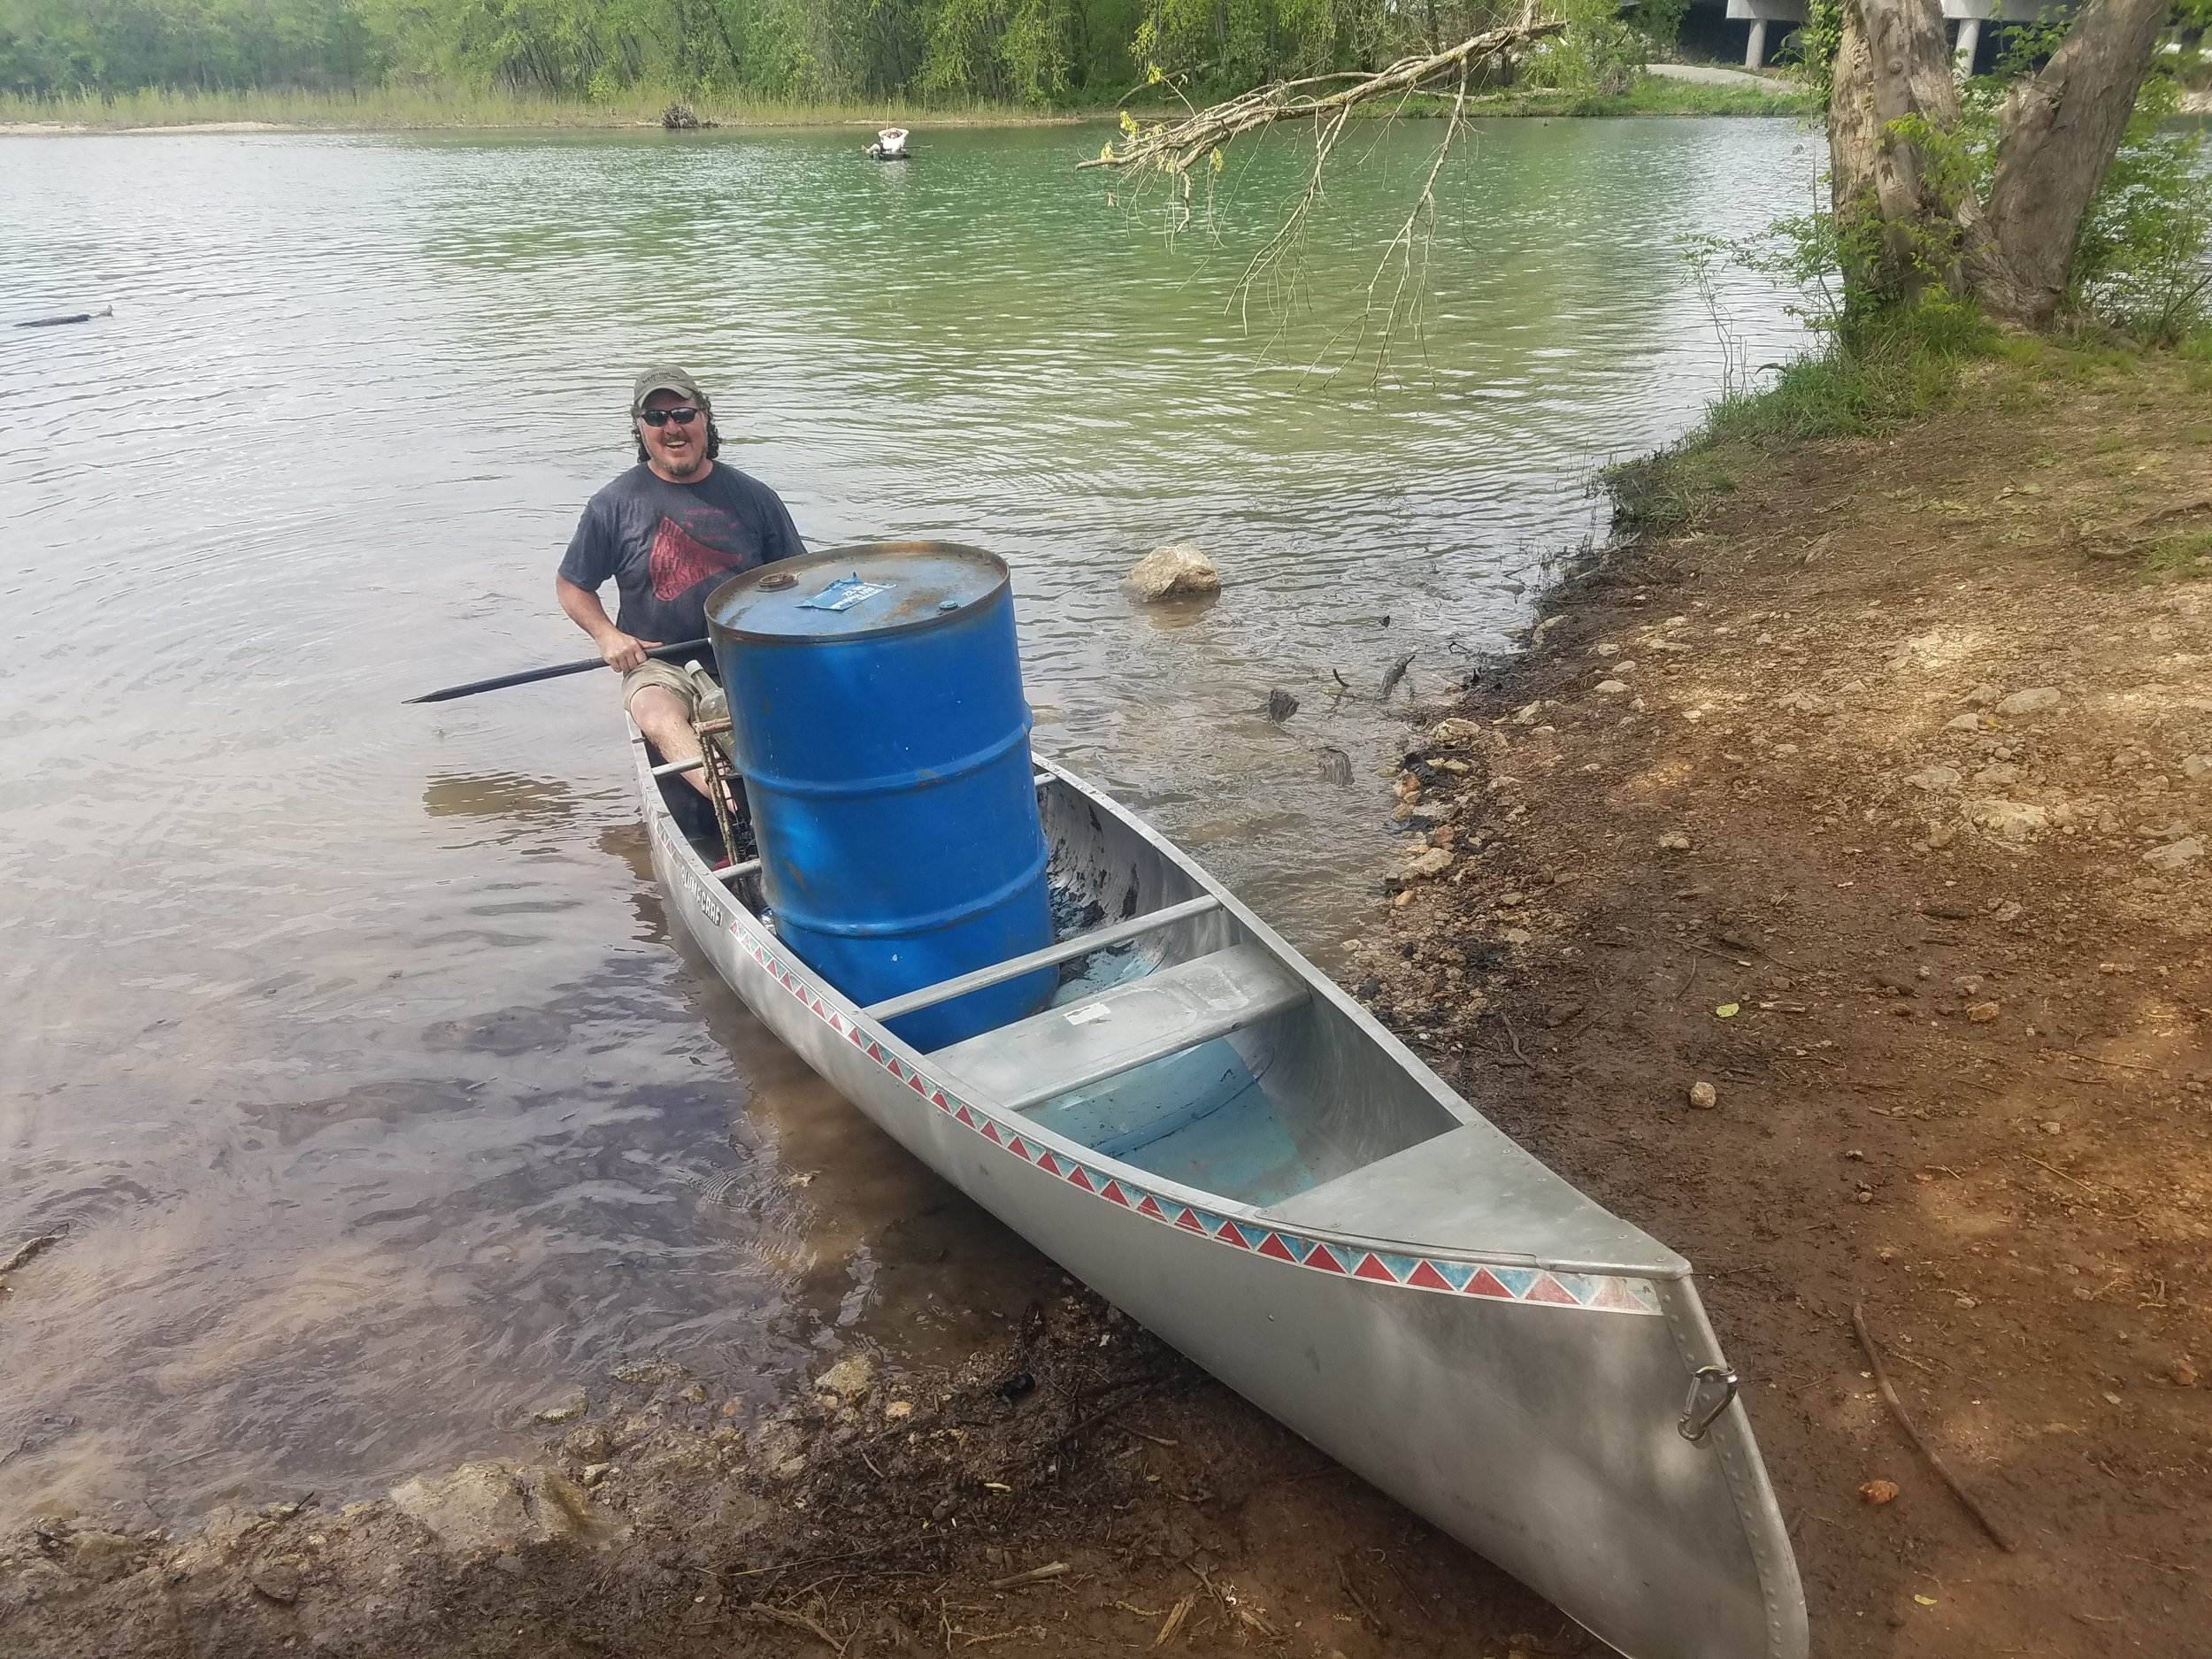 JRBP member Greg Fehrenbach brings in the blue barrel at the Earth Day cleanup on Lake Springfield.